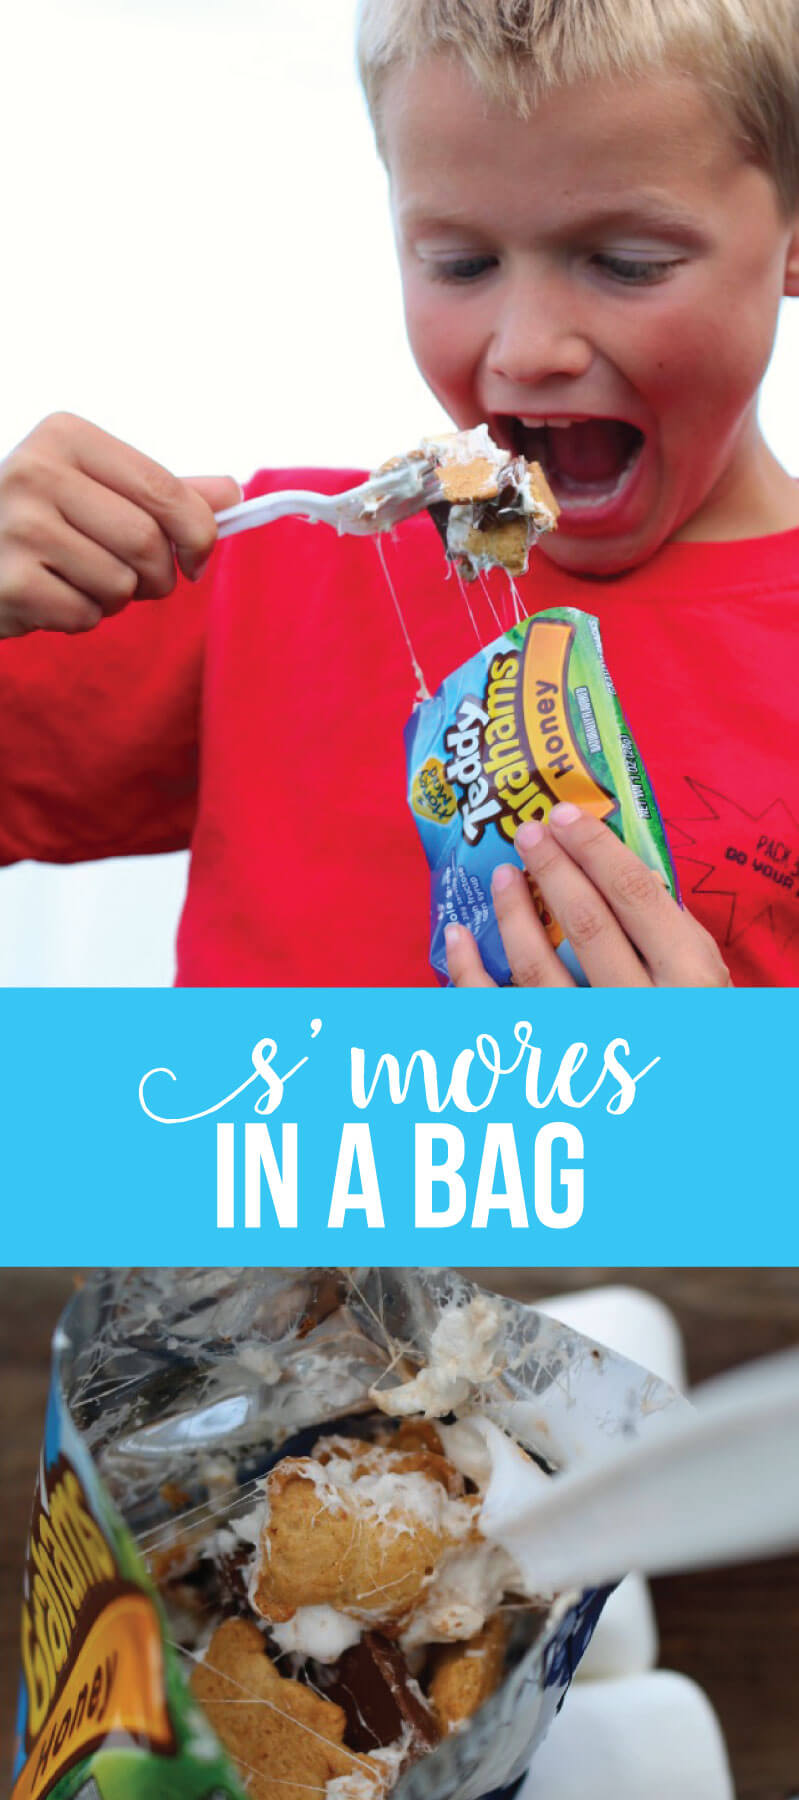 Smores in a Bag - a fun camping dessert recipe to try out.